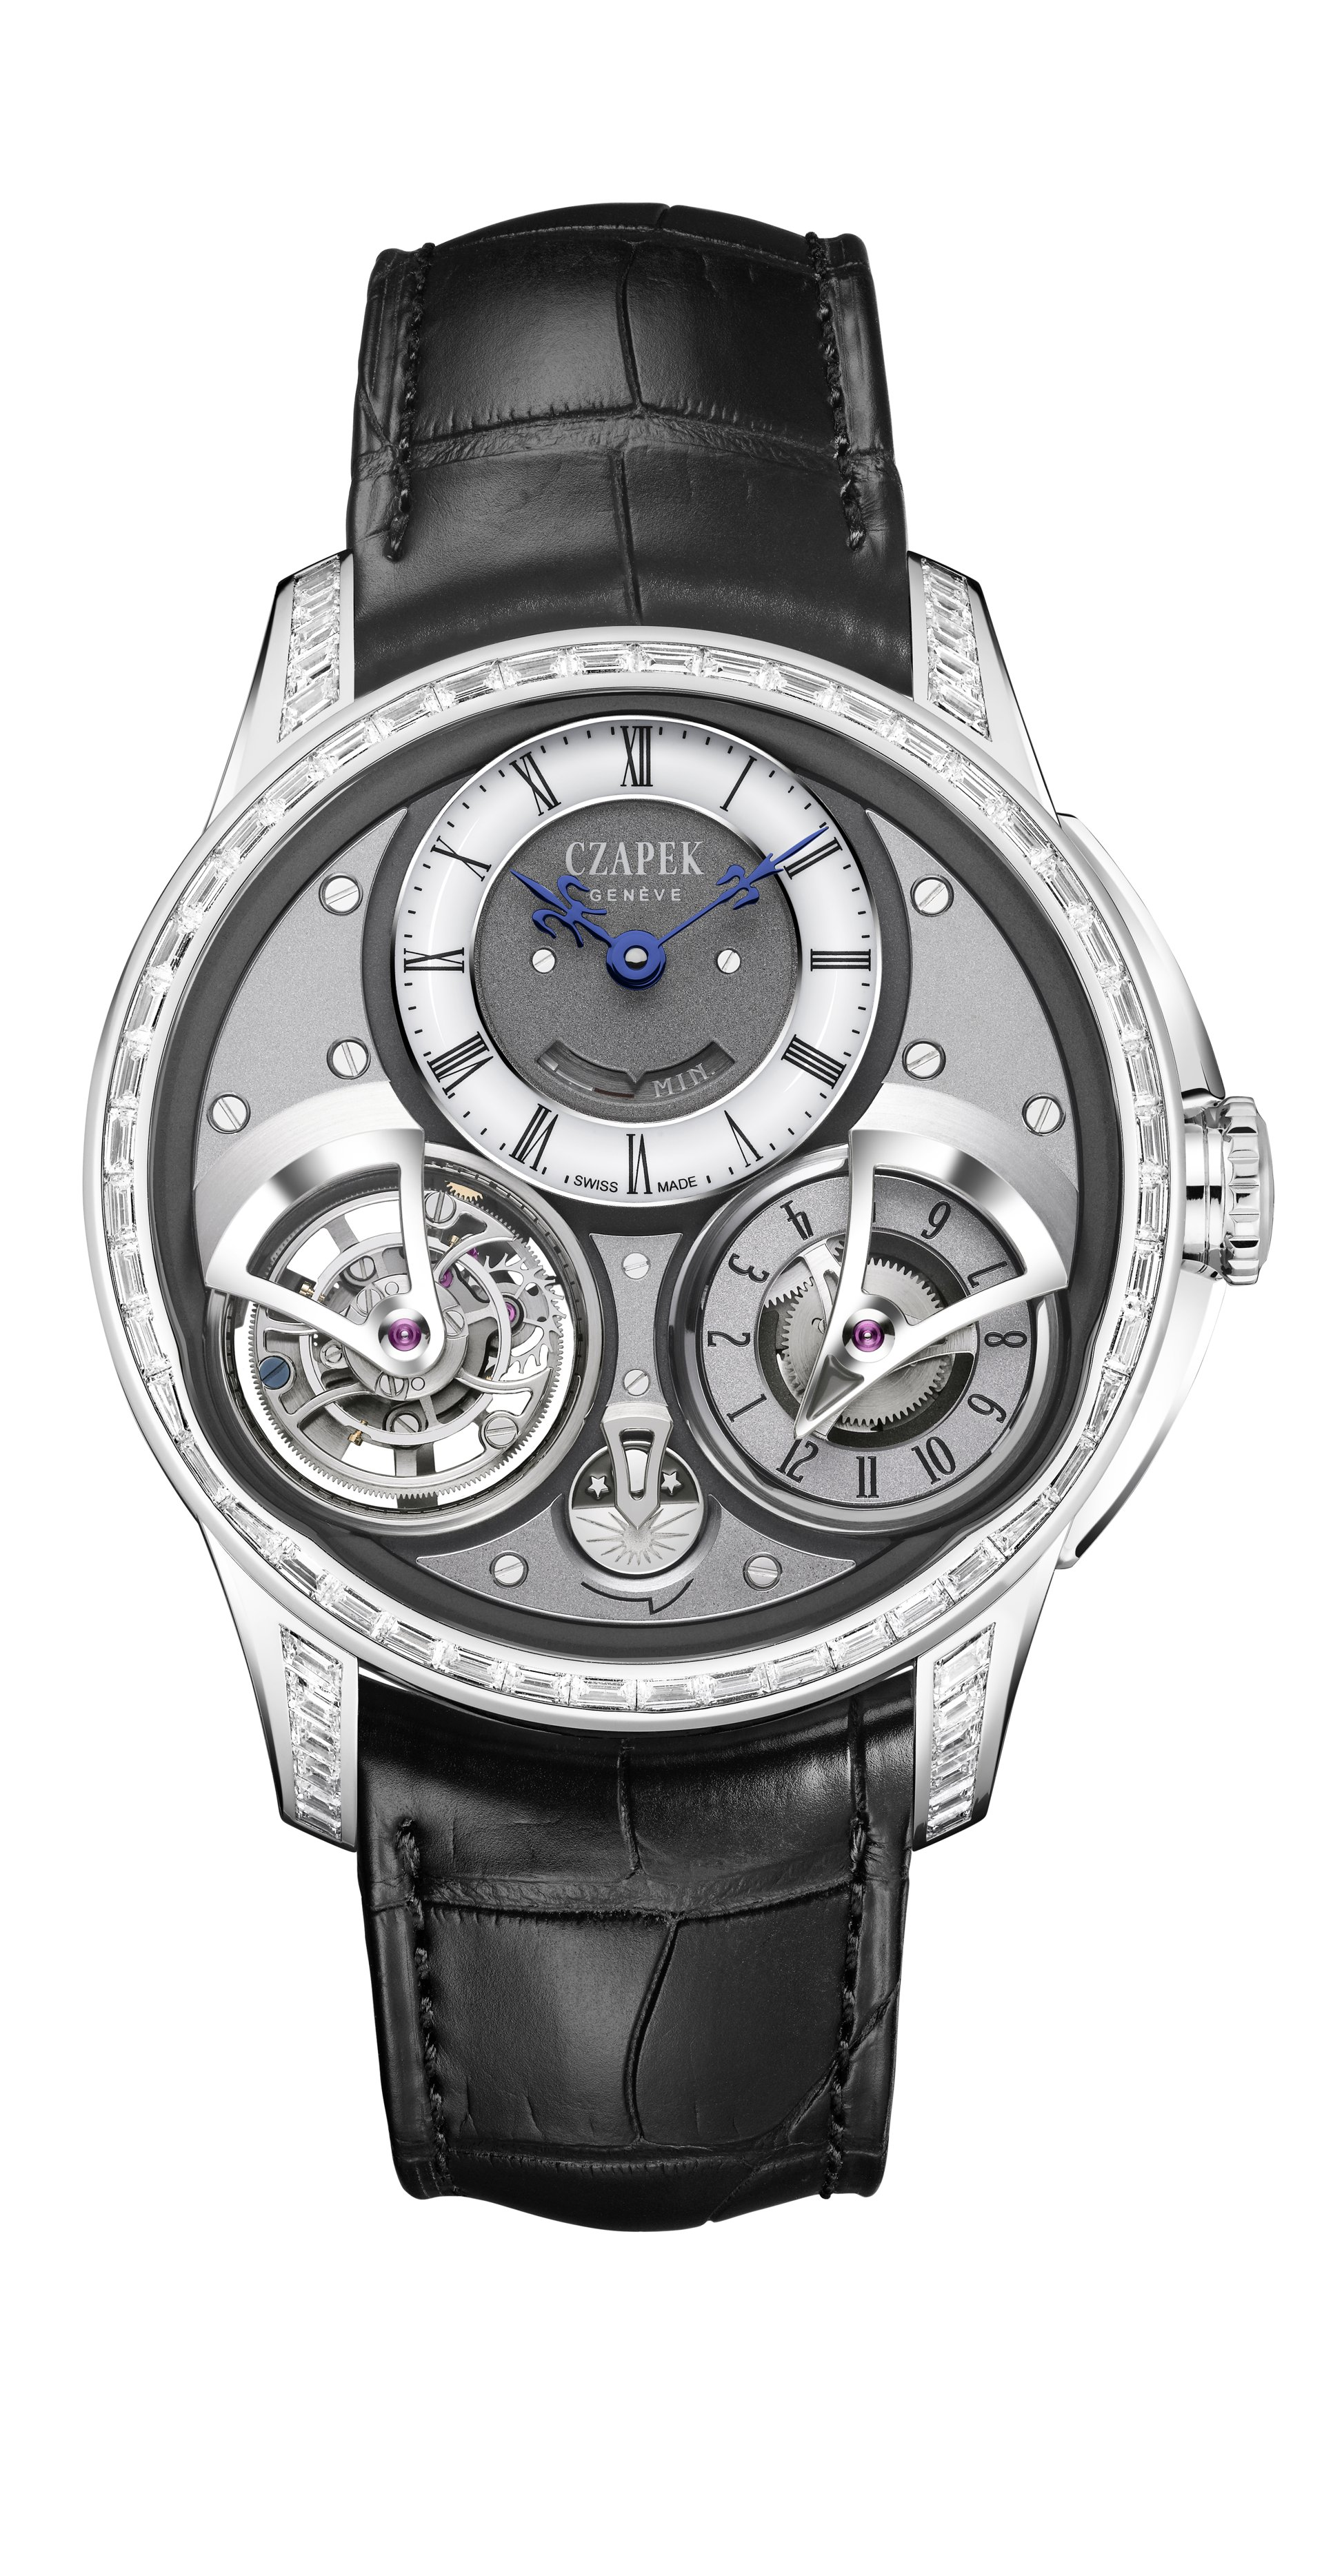 Czapek Place Vendome Tourbillon Etincelles